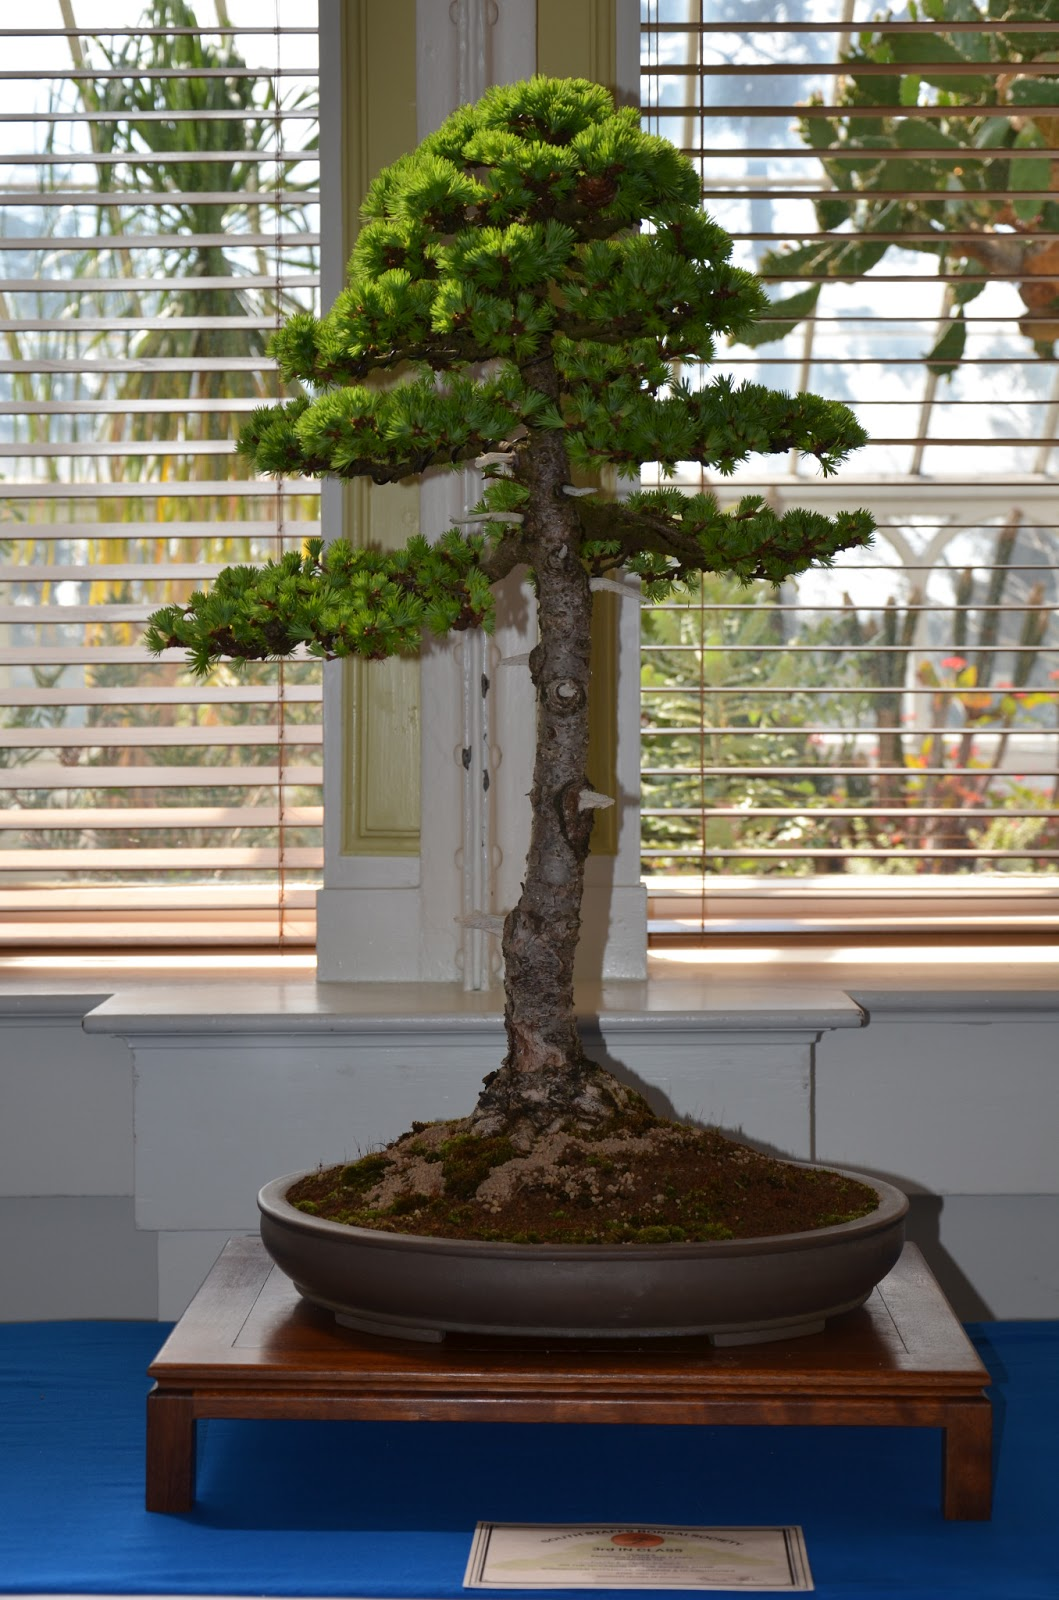 Steve Tolley39s Bonsai And Suiseki Blog June 2013